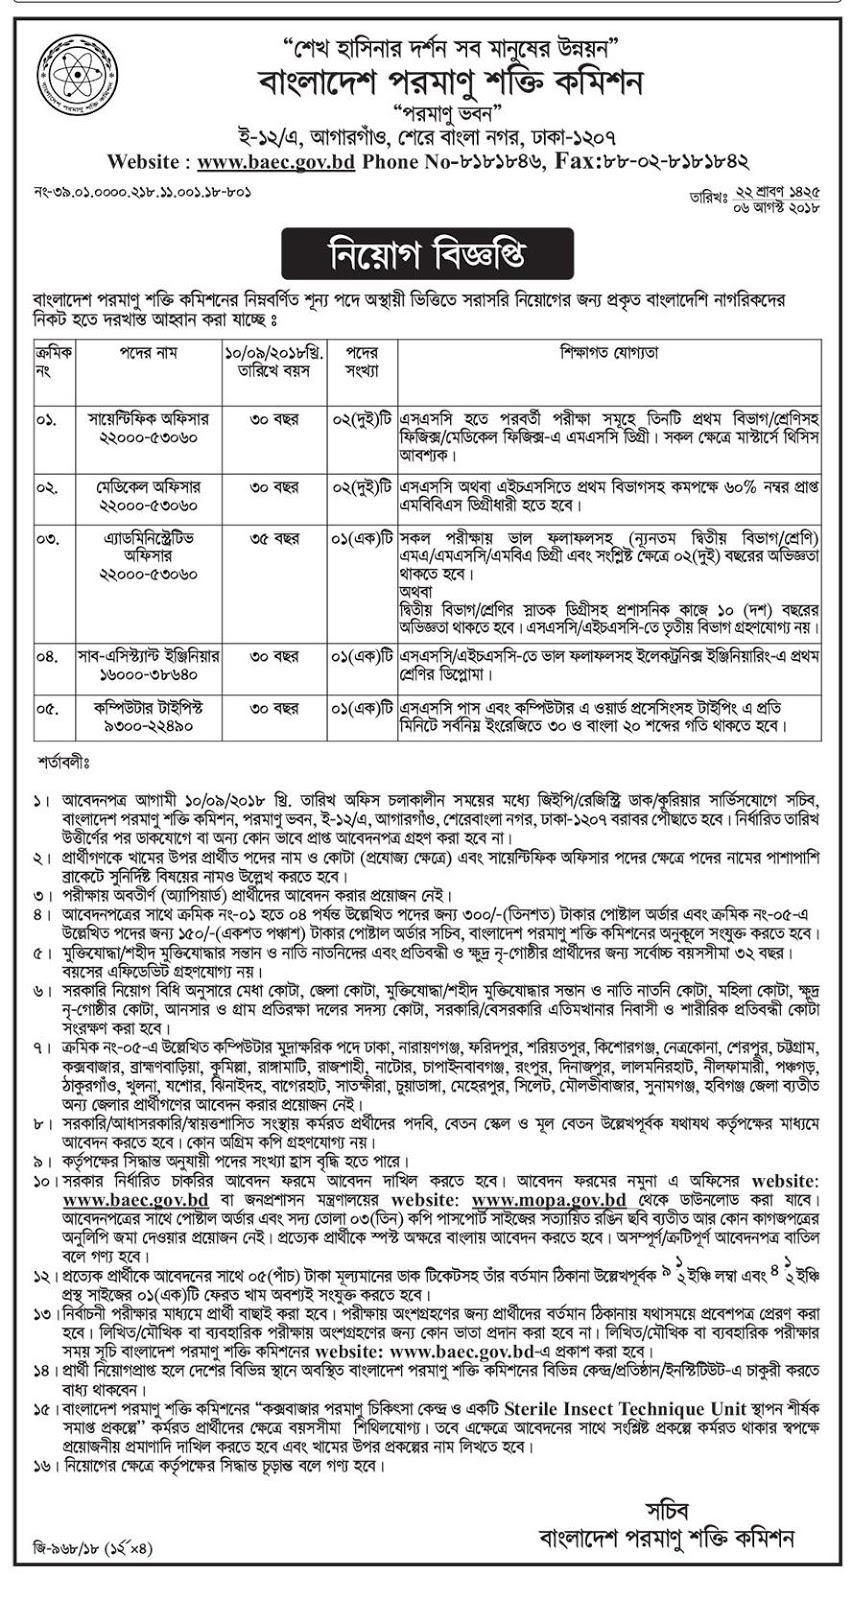 Bangladesh Atomic Energy Commission (BEAC) Job Circular 2018